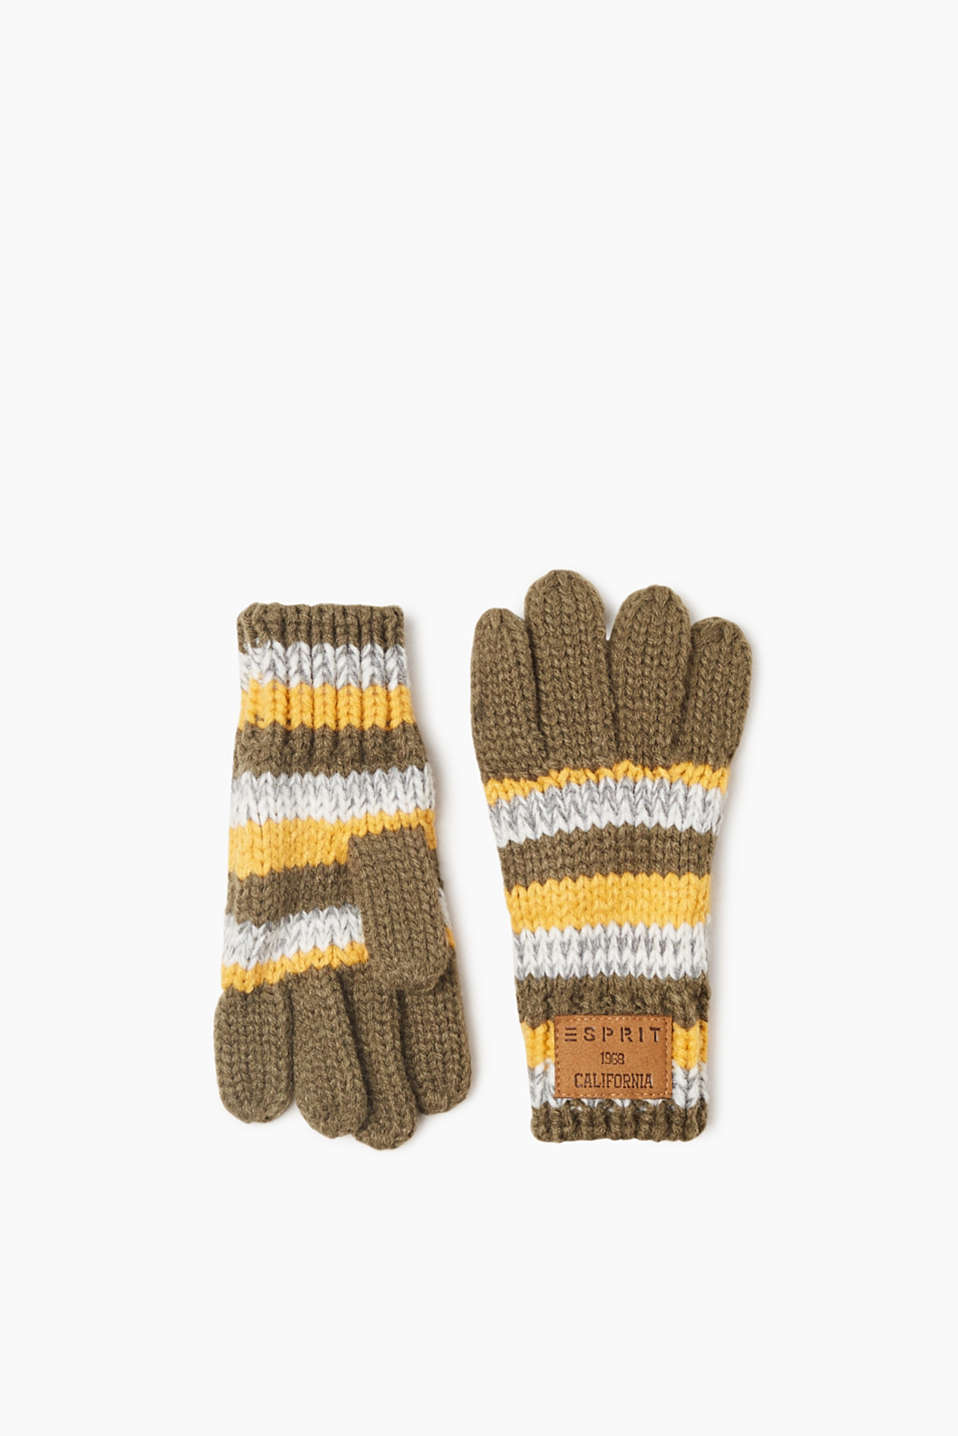 With these knitted gloves in a fresh striped look, the little ones will look great in their winter outfits